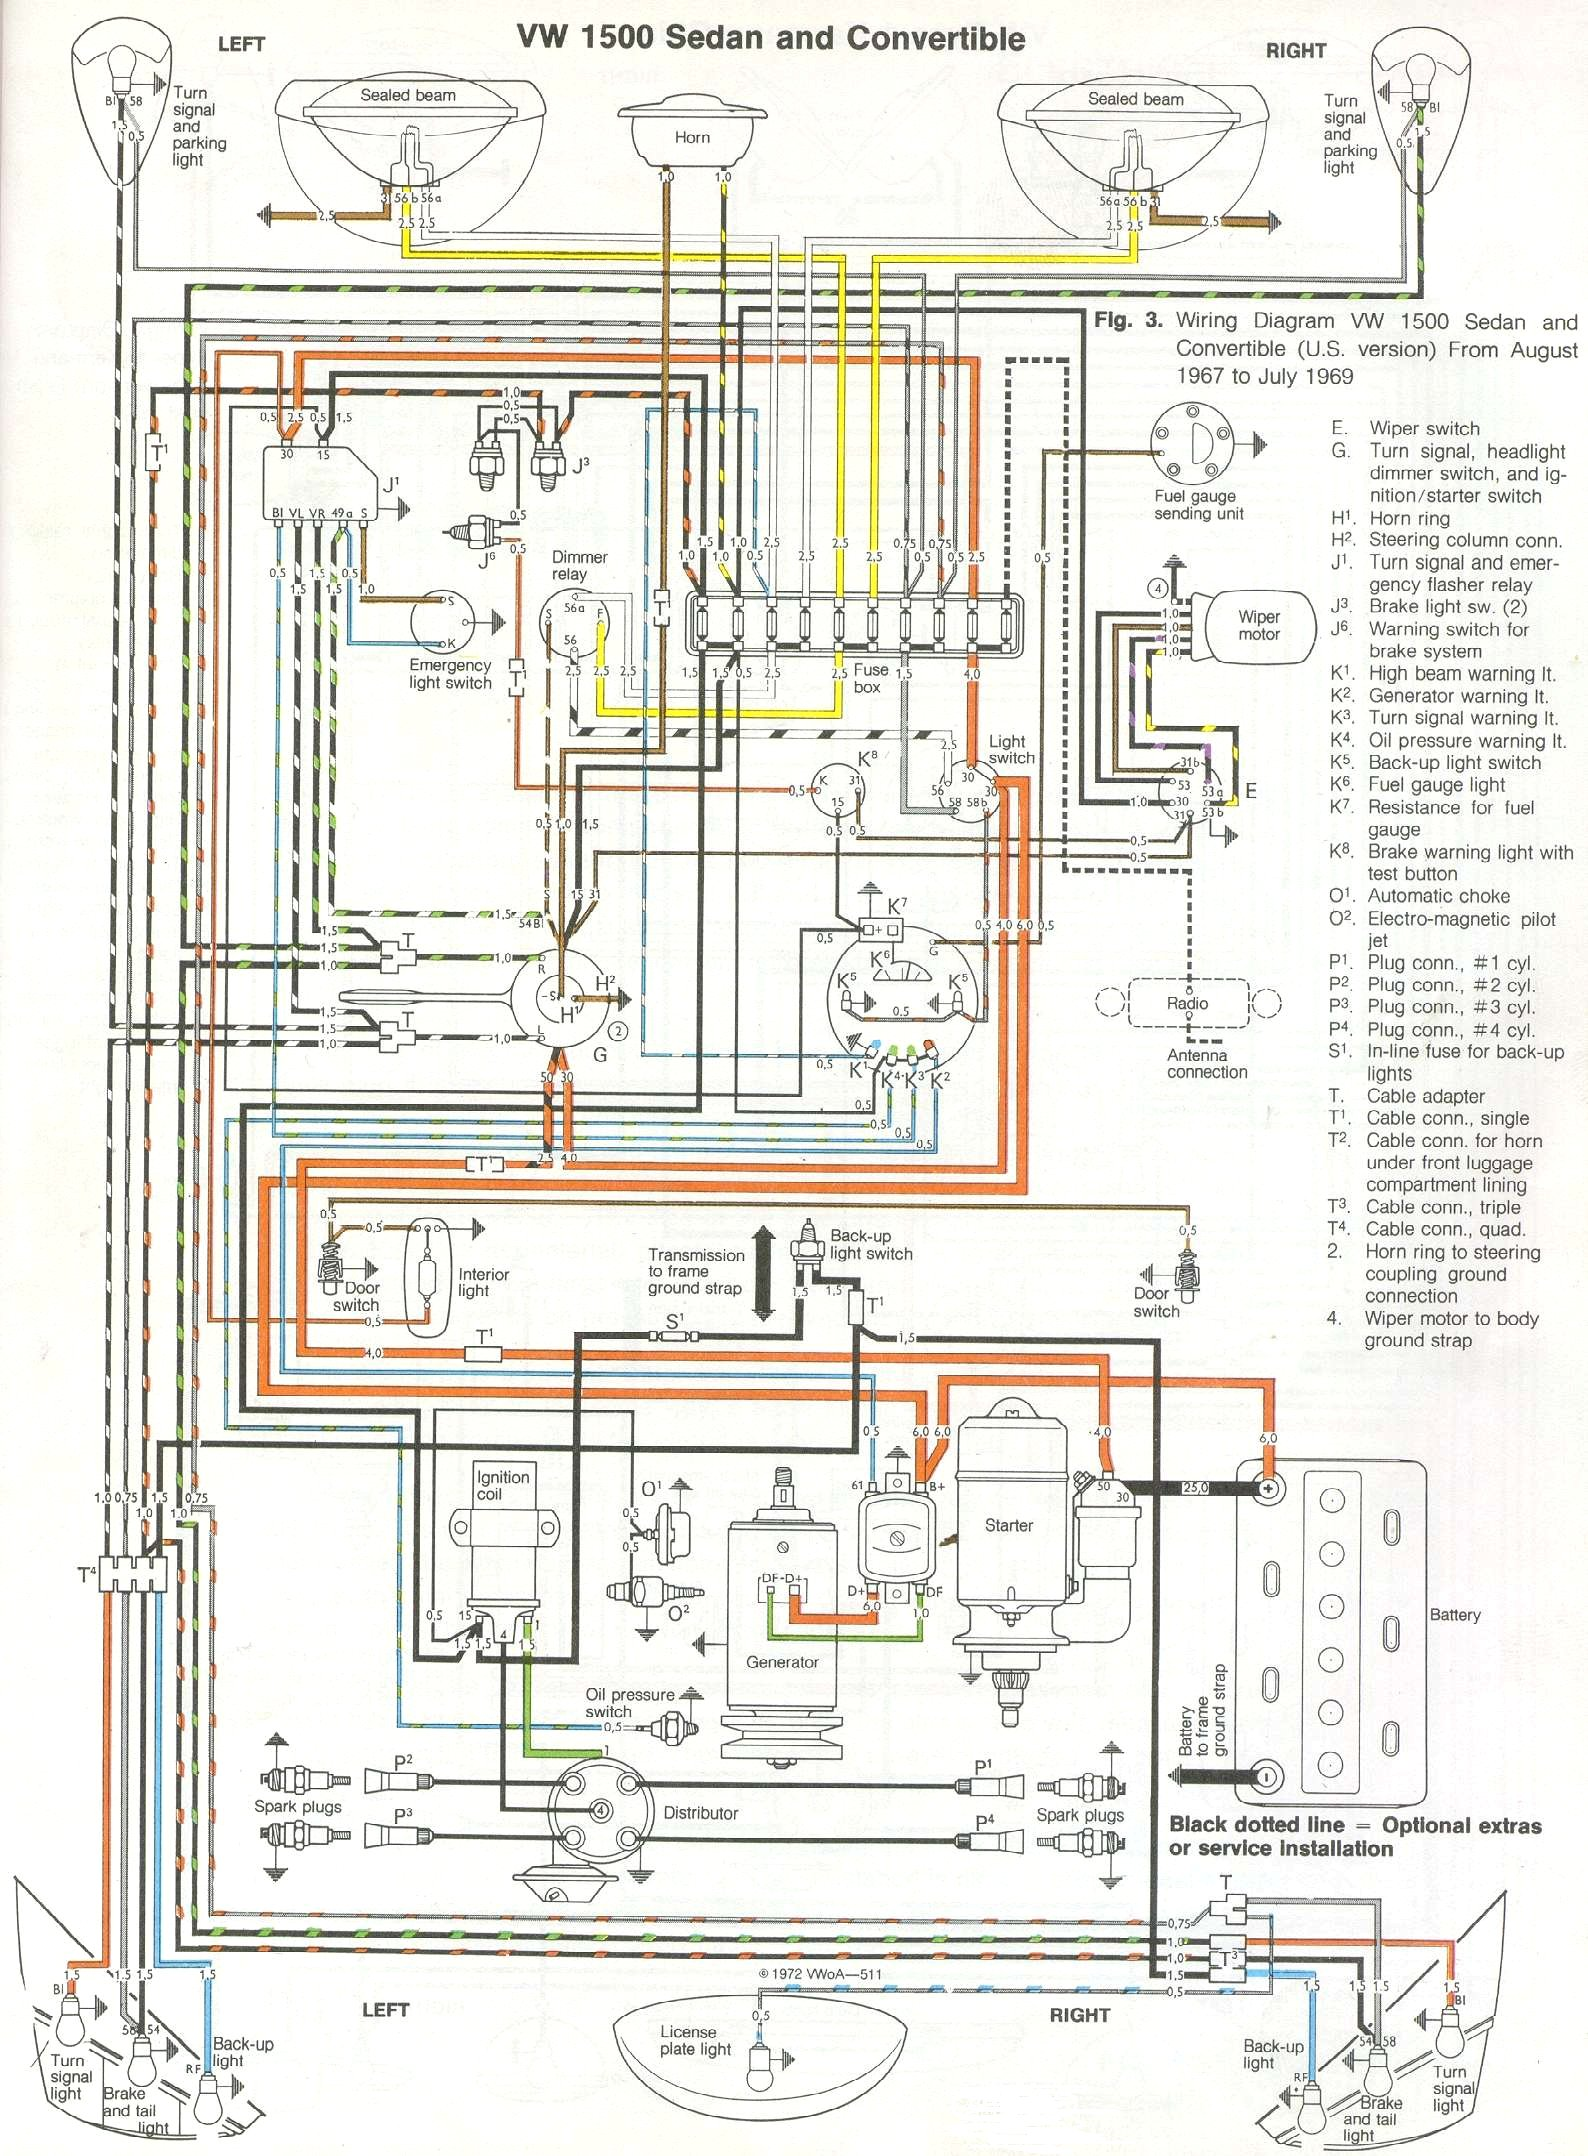 1969-71 beetle wiring diagram | thegoldenbug.com volkswagen beetle ignition wiring diagram #2